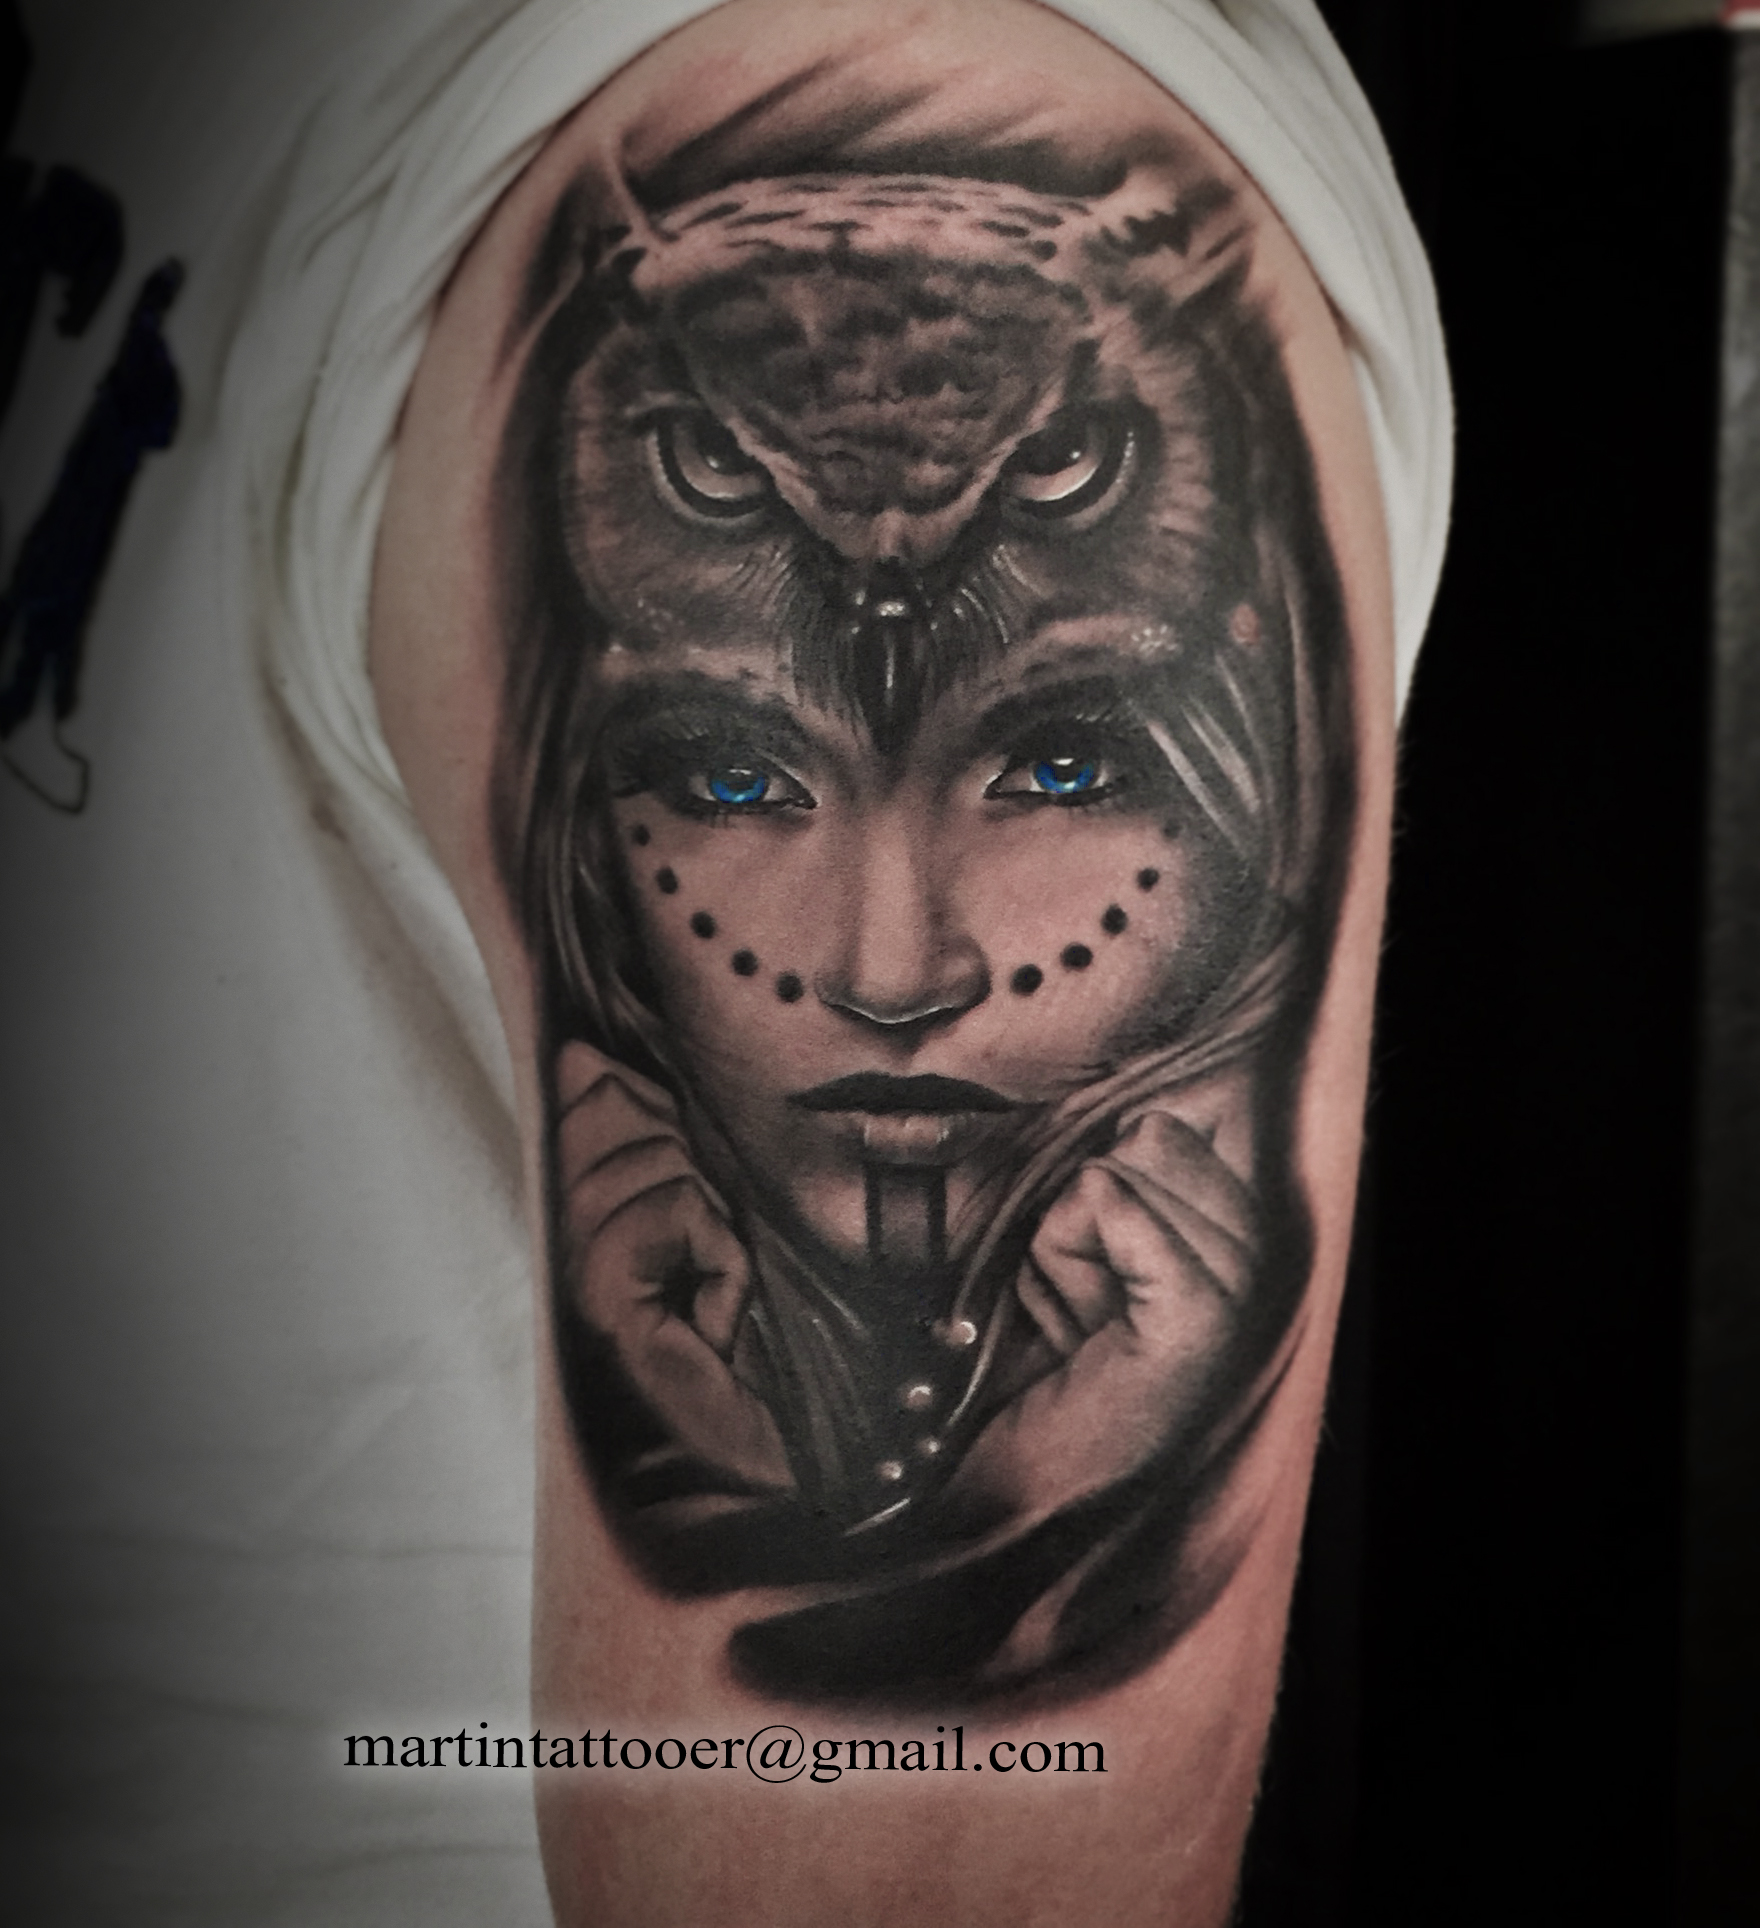 Amazing Arm Tattoos By Approved Artists